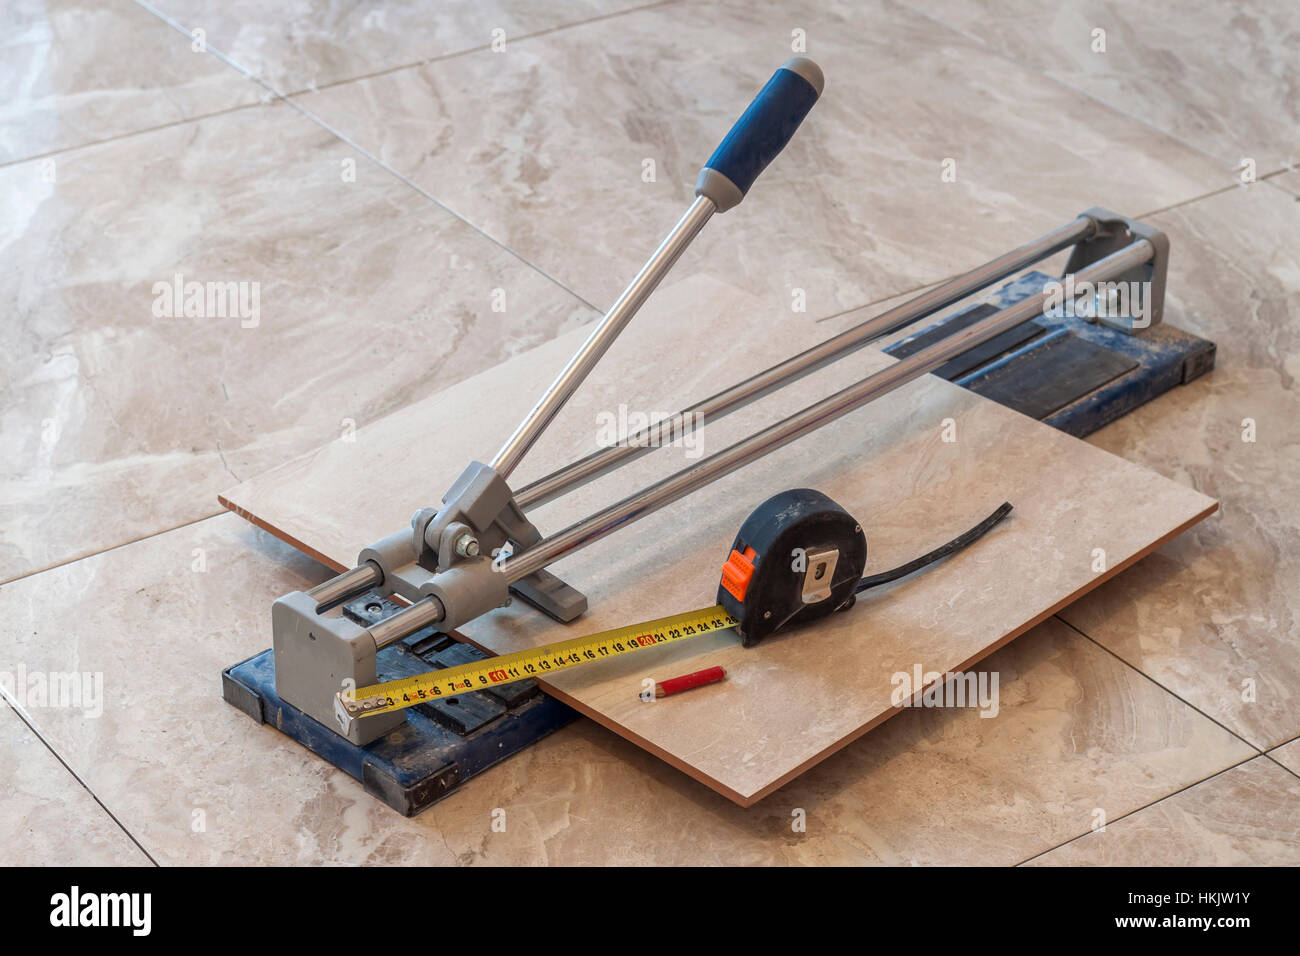 Ceramic tiles and tools for tiler floor tiles installation home ceramic tiles and tools for tiler floor tiles installation home improvement renovation dailygadgetfo Images